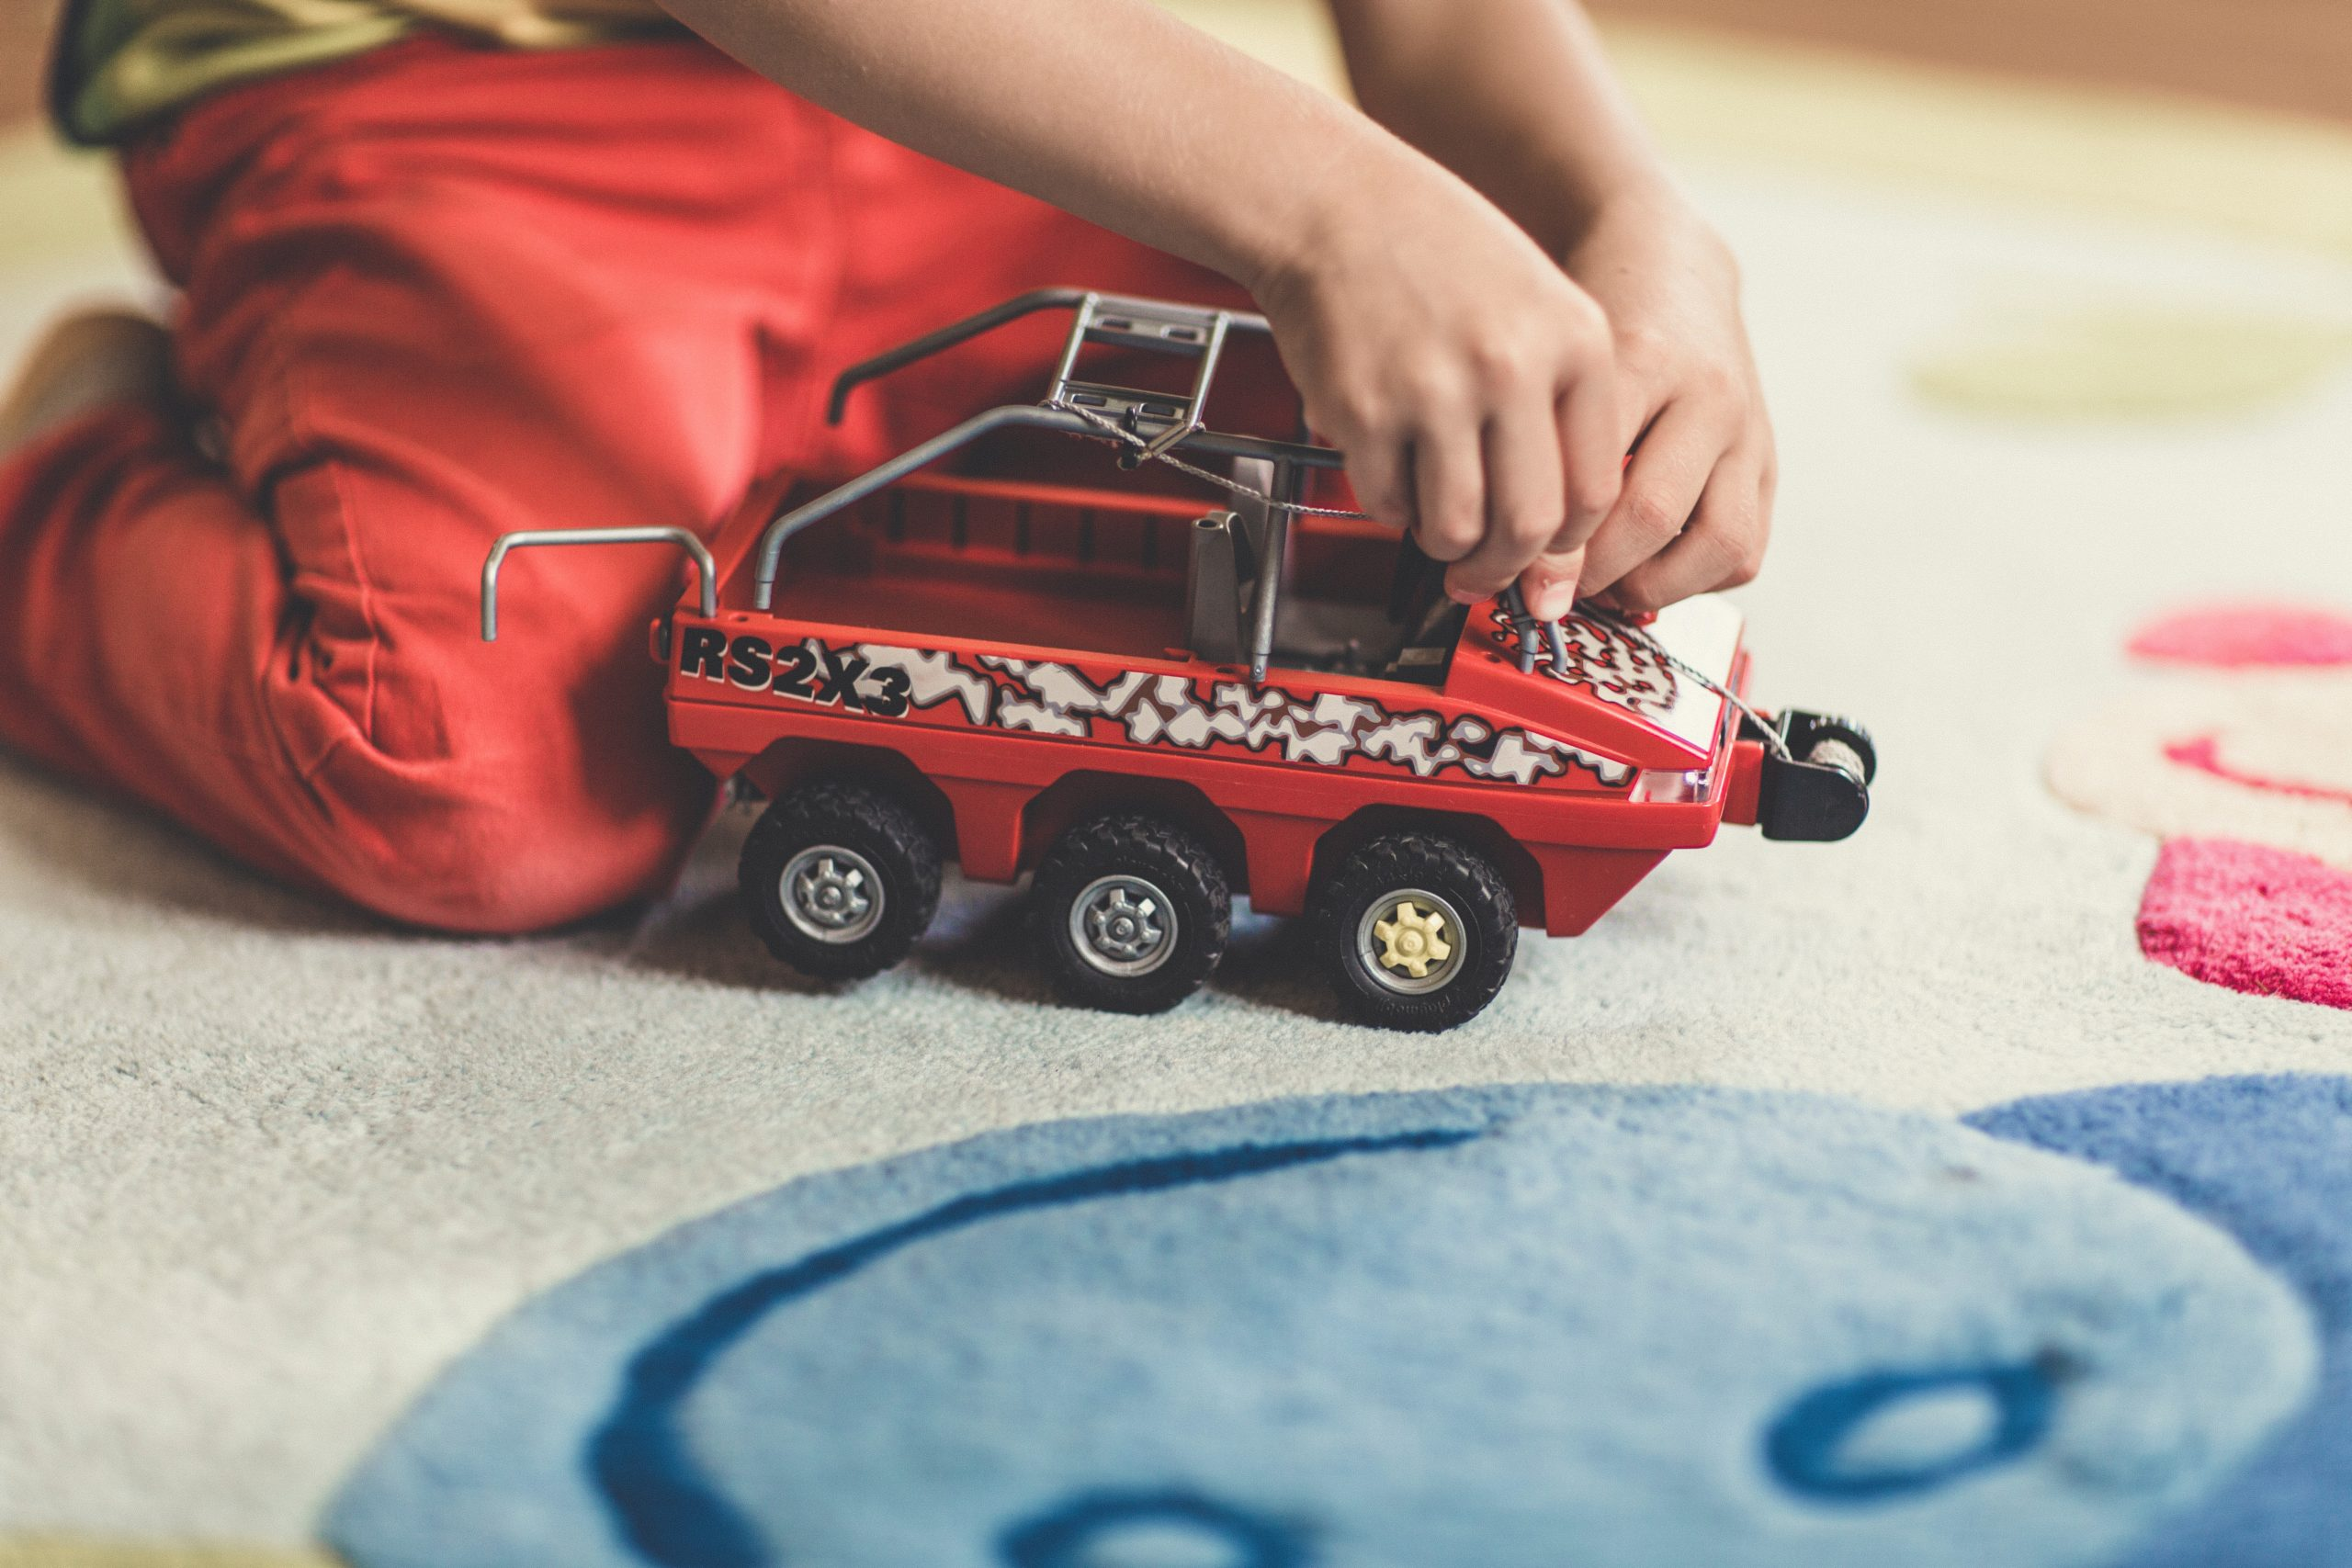 Santa Rosa Carpet Care: How to Protect Your Carpets